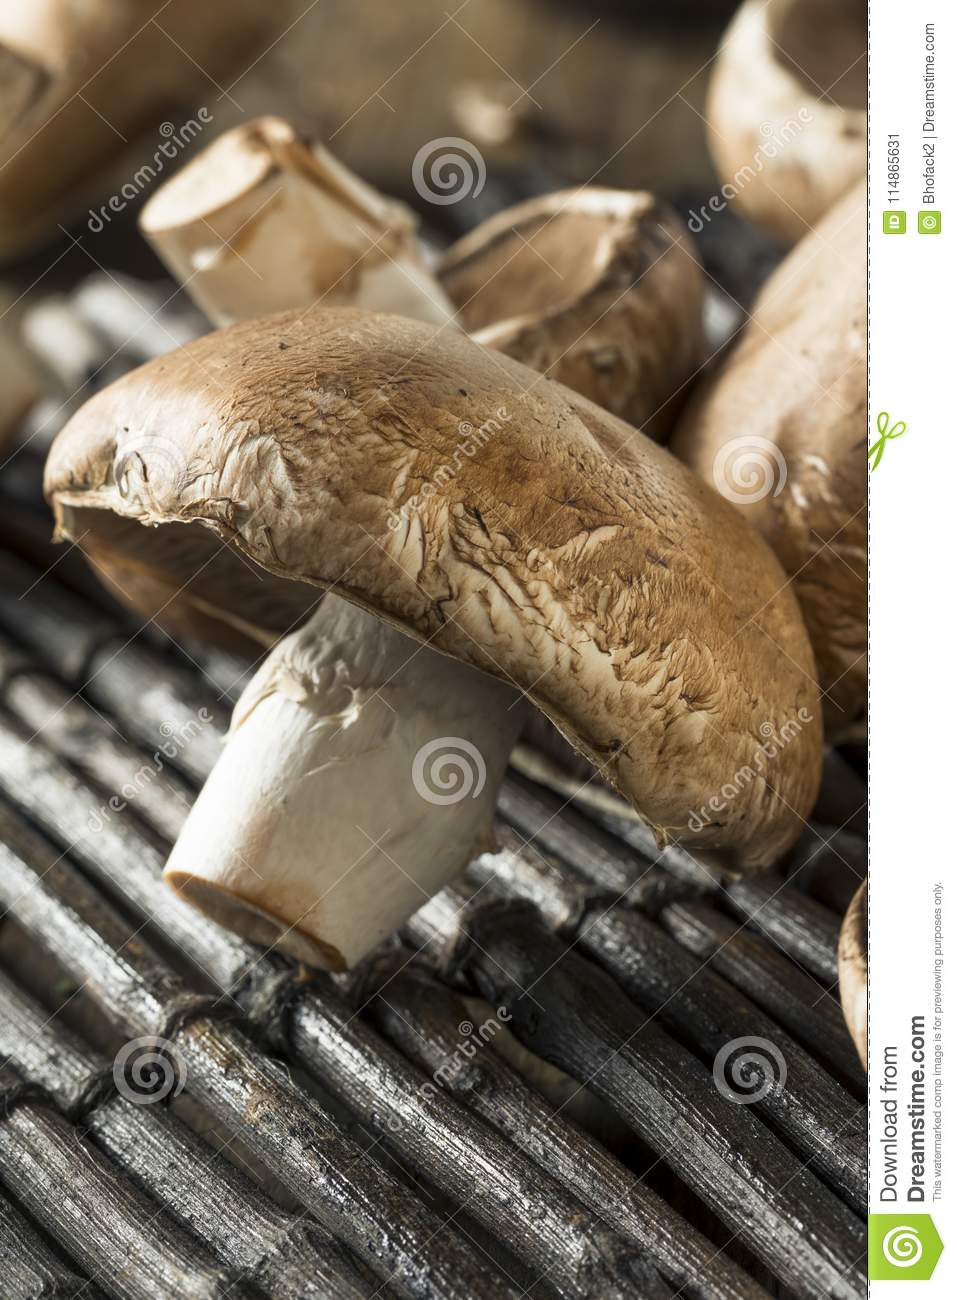 Raw Organic Portobello Mushrooms Stock Image Image Of Nature Portobello 114865631